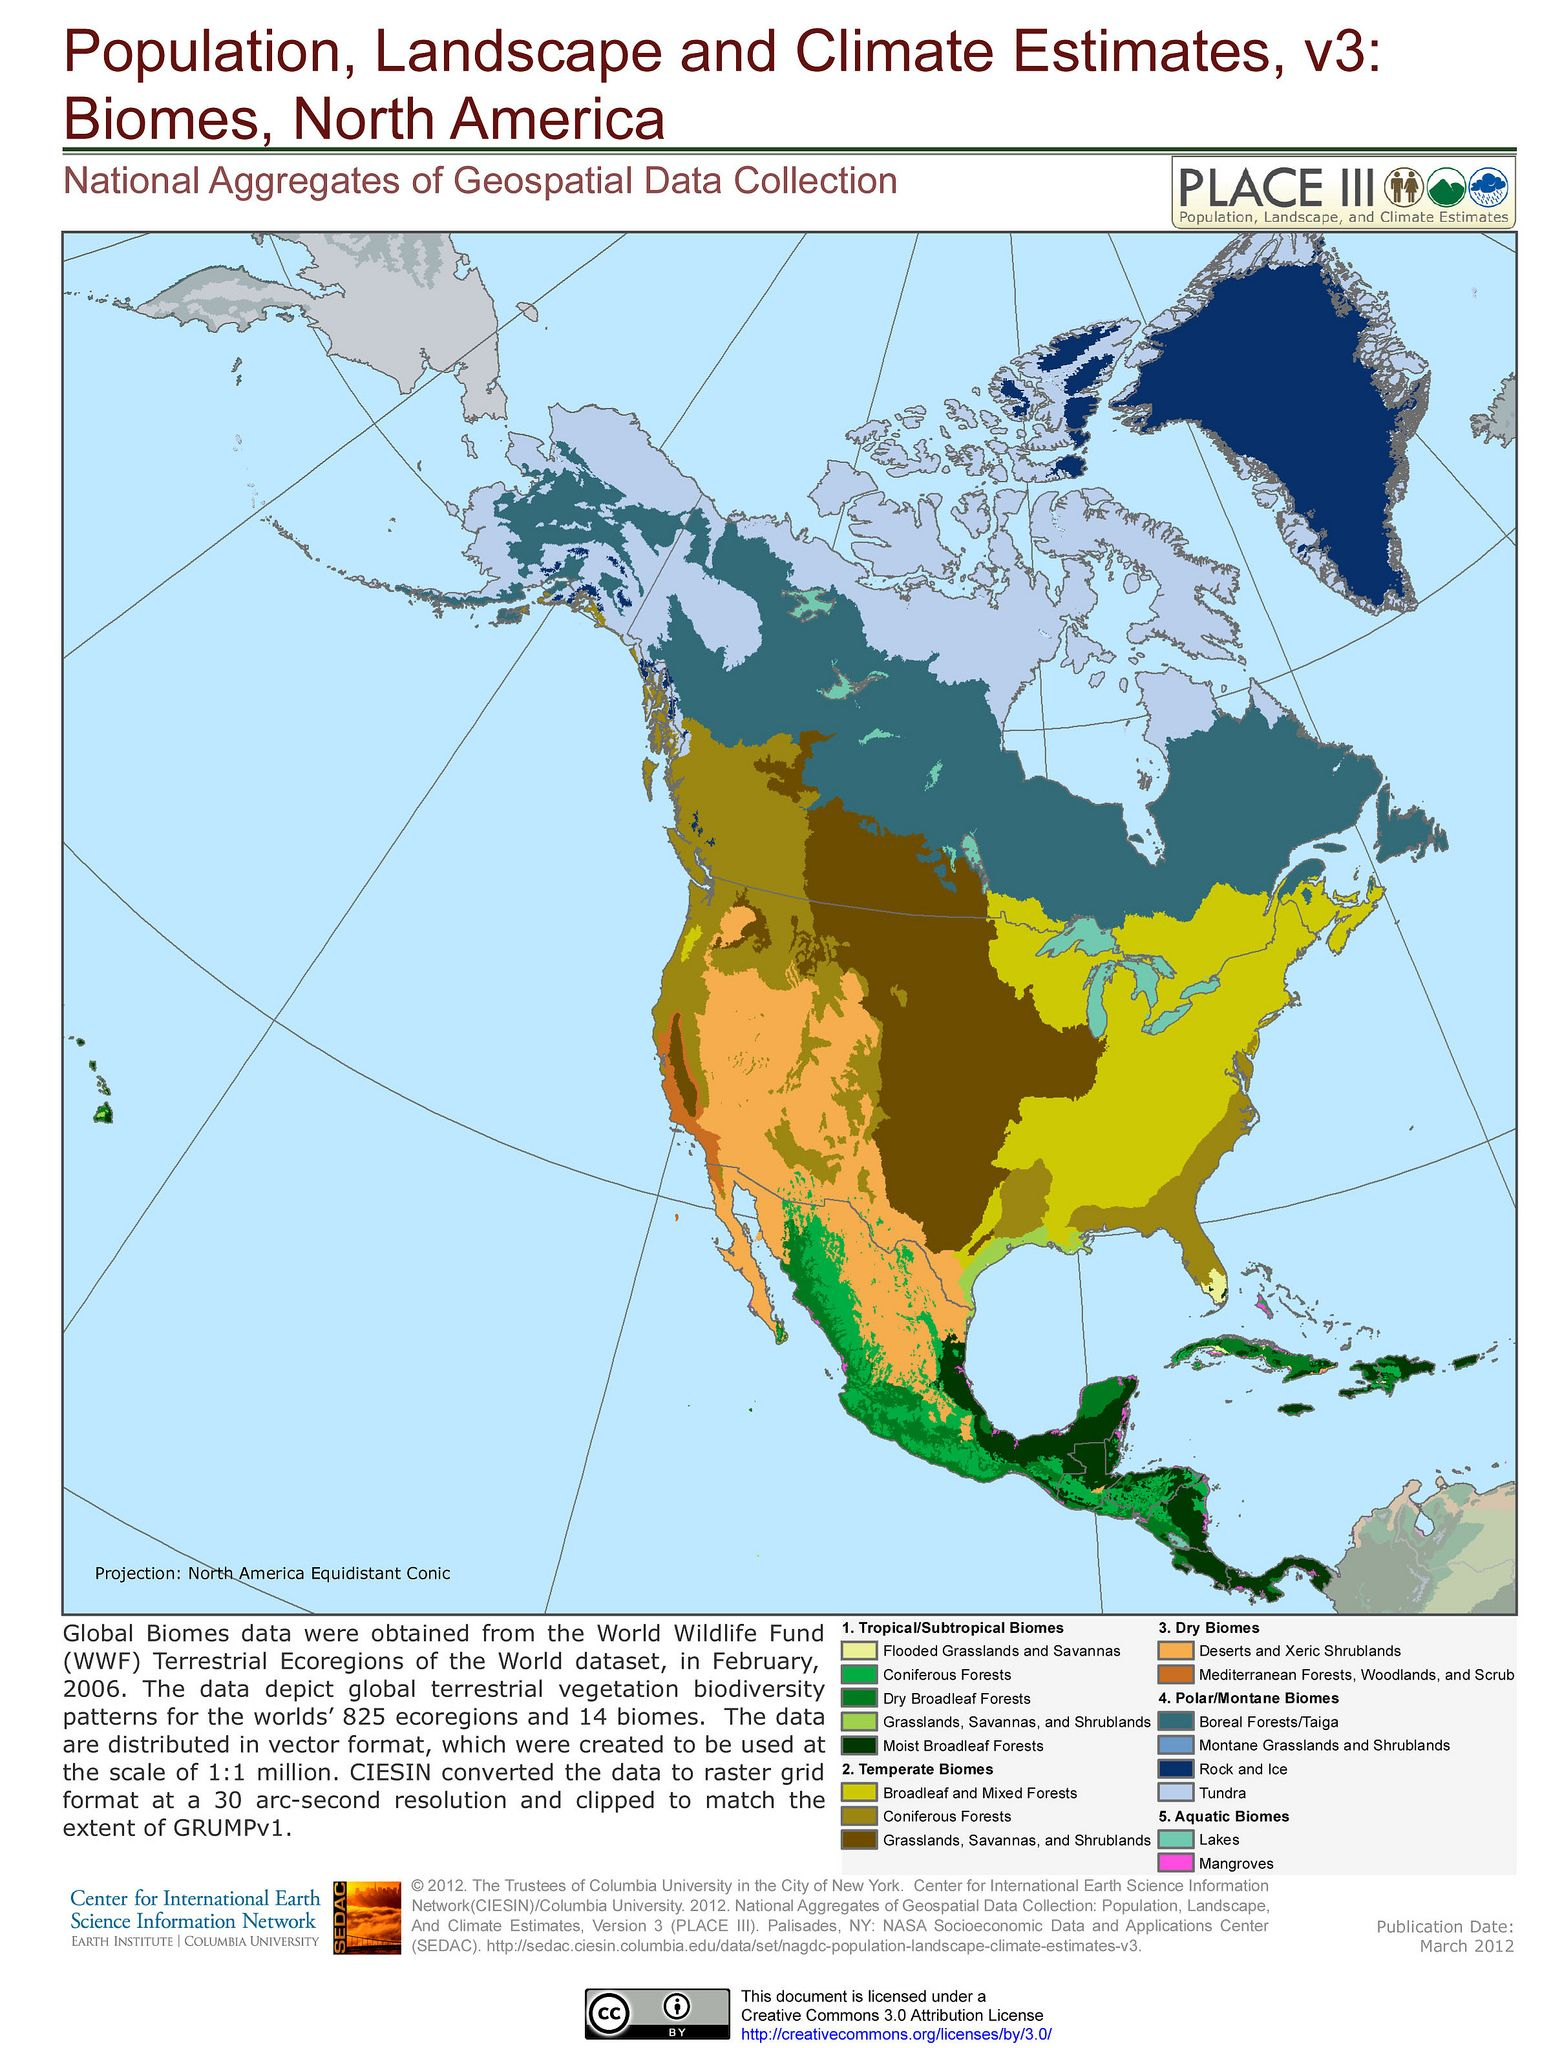 Biomes North America REF GEO regions